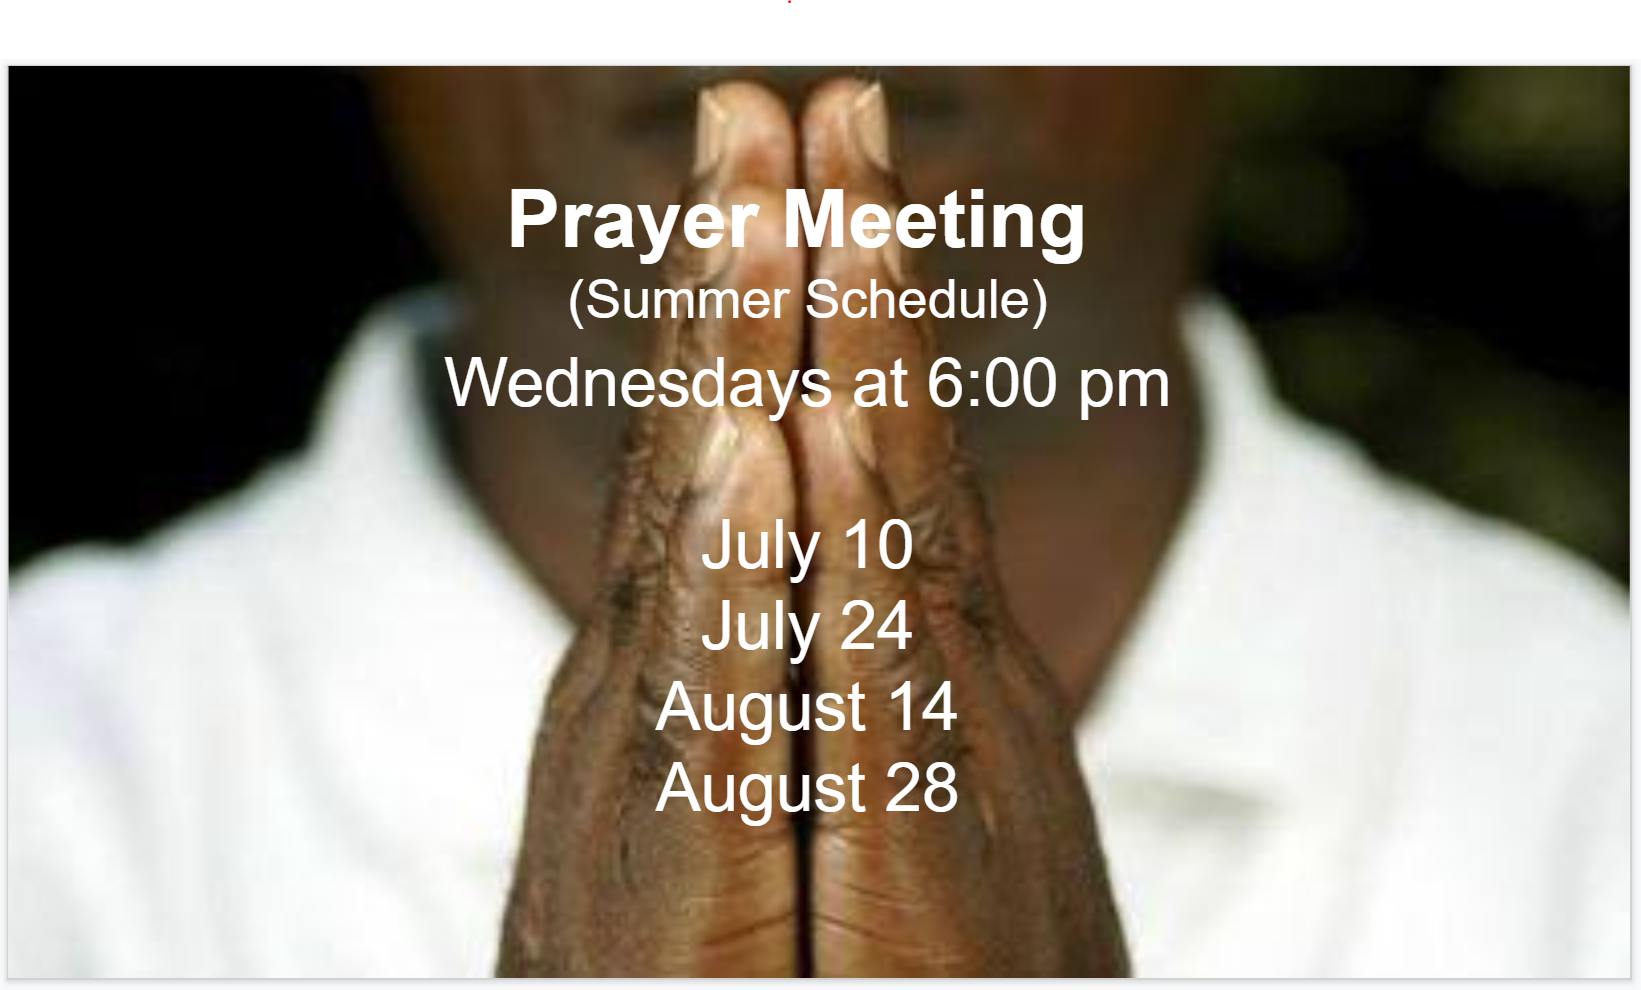 Prayer Meeting Fellowship Missionary Baptist Church, Minneapolis MN